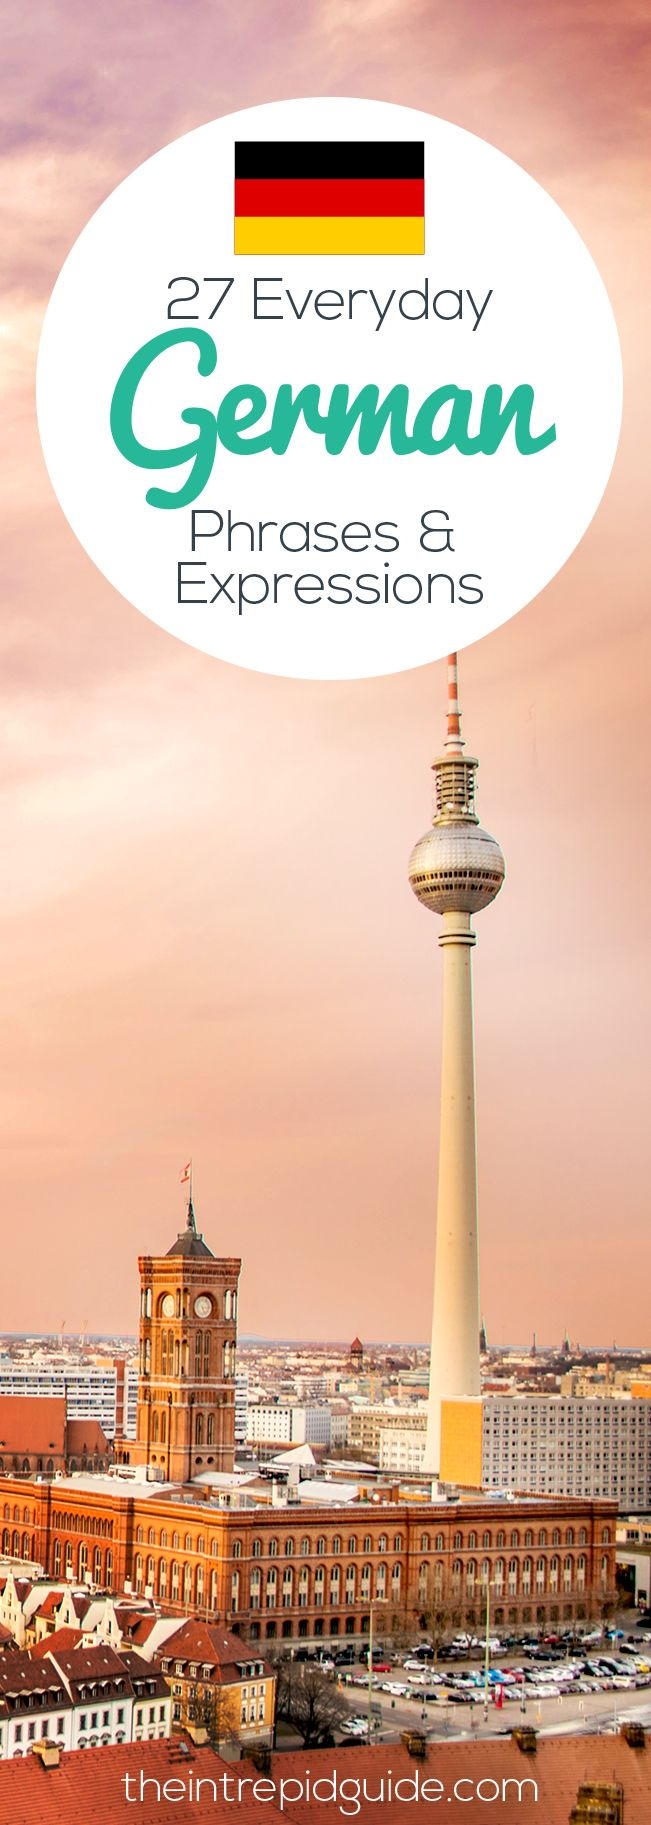 27 Everyday German Phrases and Expressions 330